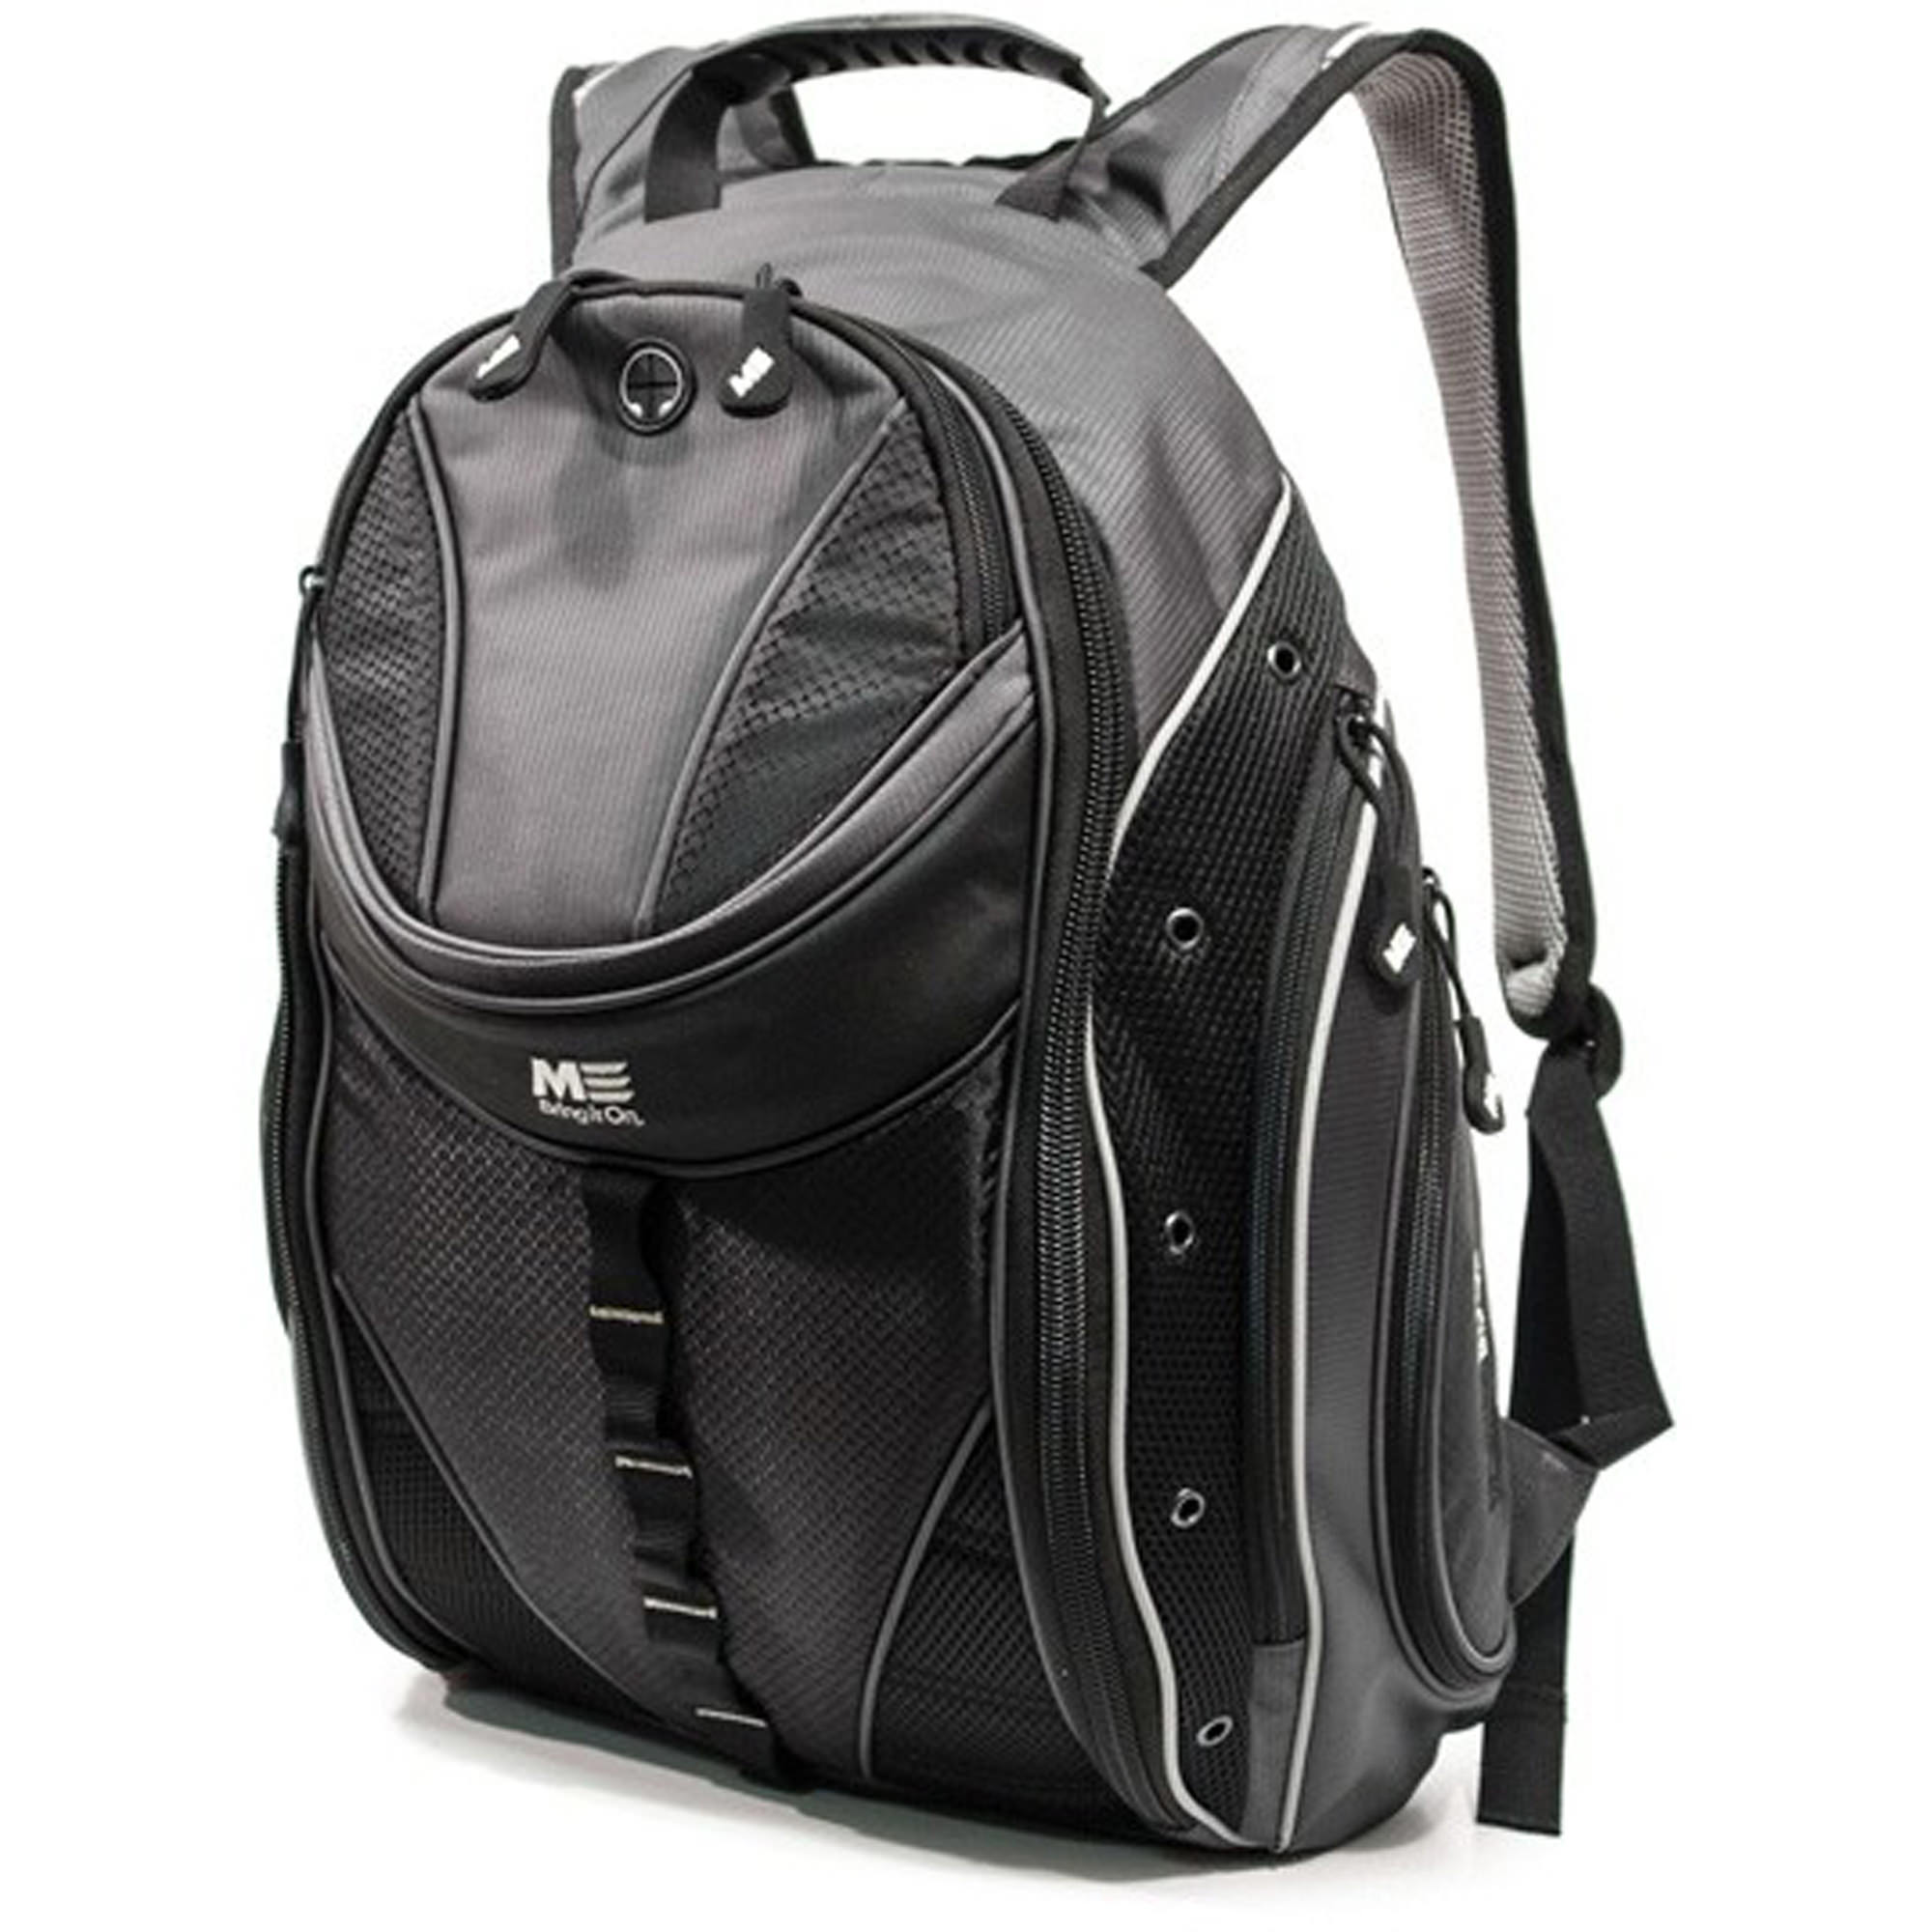 "Mobile Edge MEGBPE Graphite Express 15.6"" Laptop/Tablet Backpack 2.0 - Graphite"